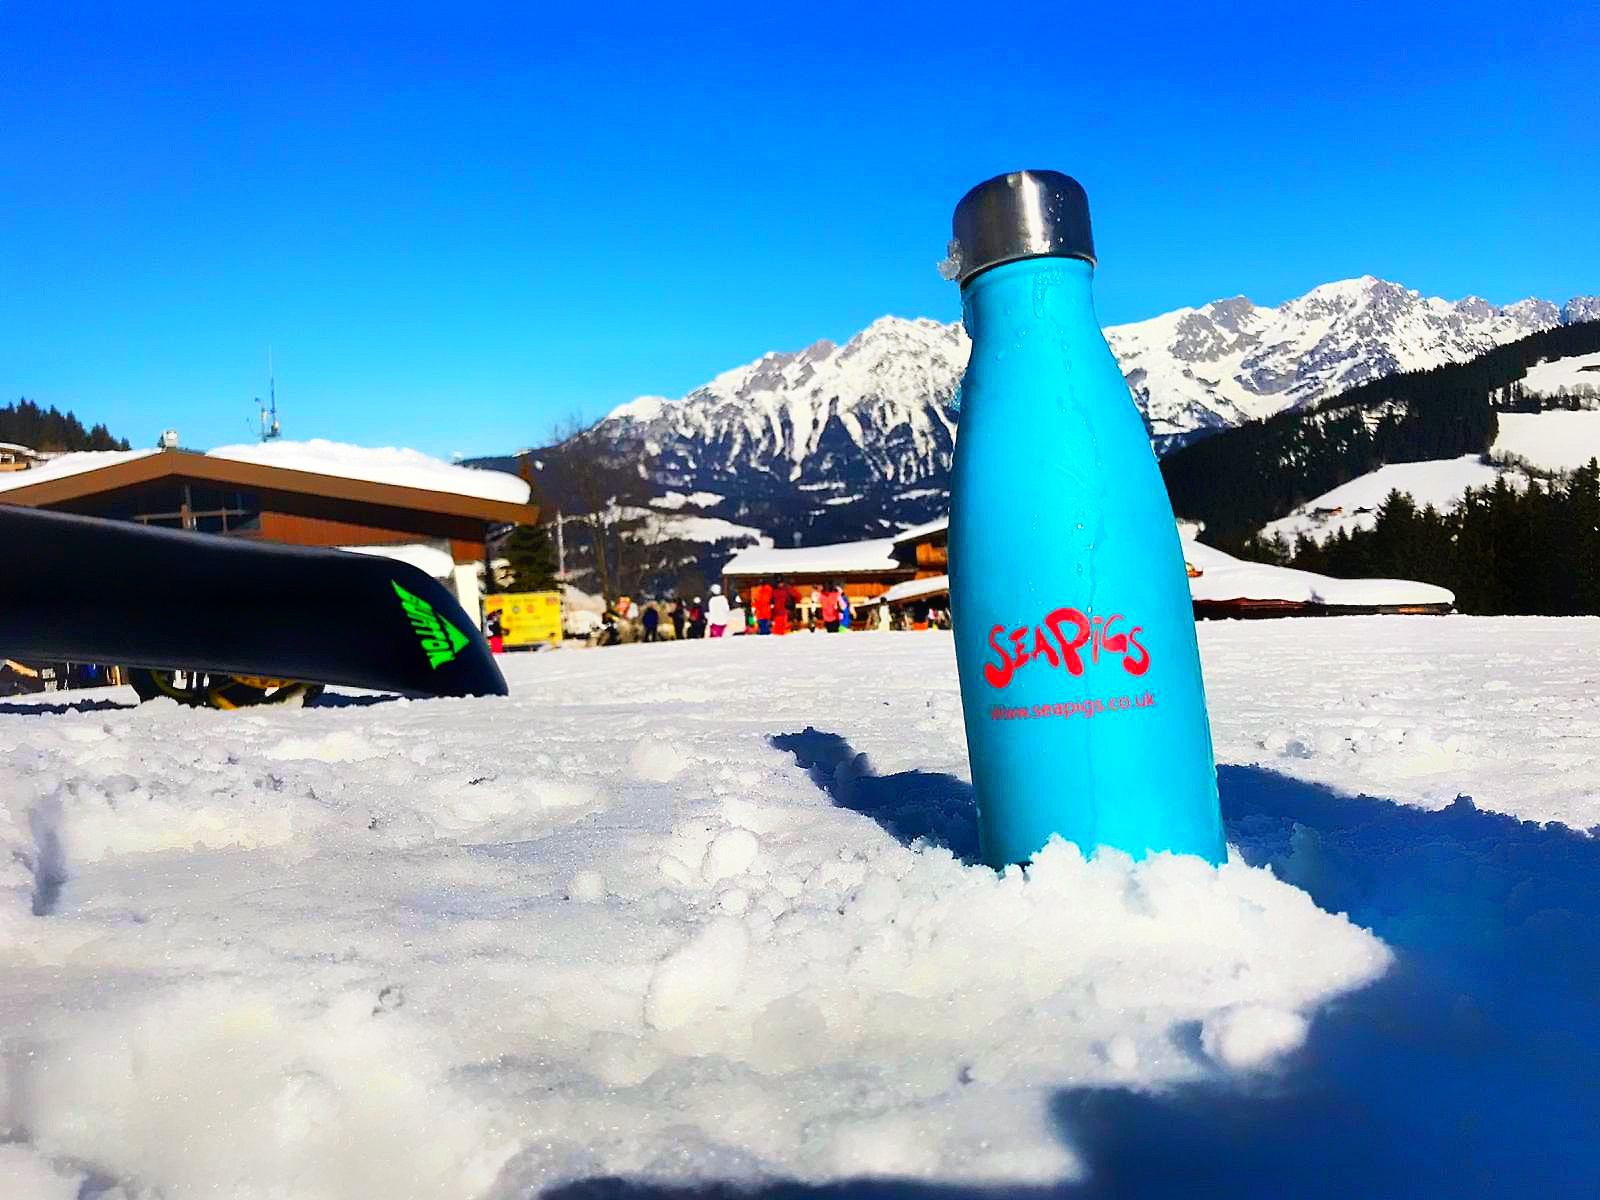 A SeaPigs water bottle in Söll, taken by Rachael White